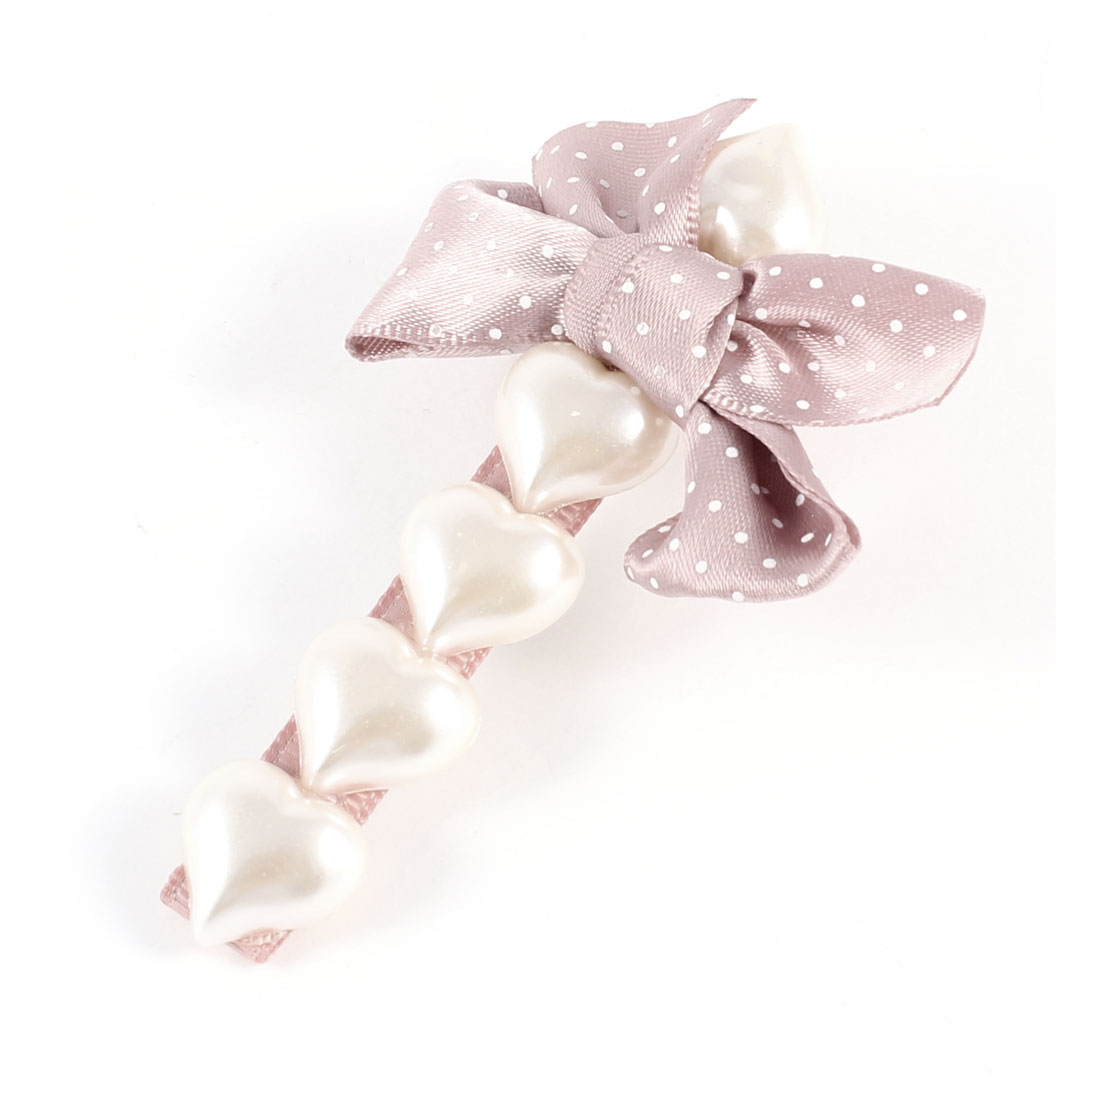 White Heart Beads Light Pink Bowknot Alligator Clip Hairclip for Woman